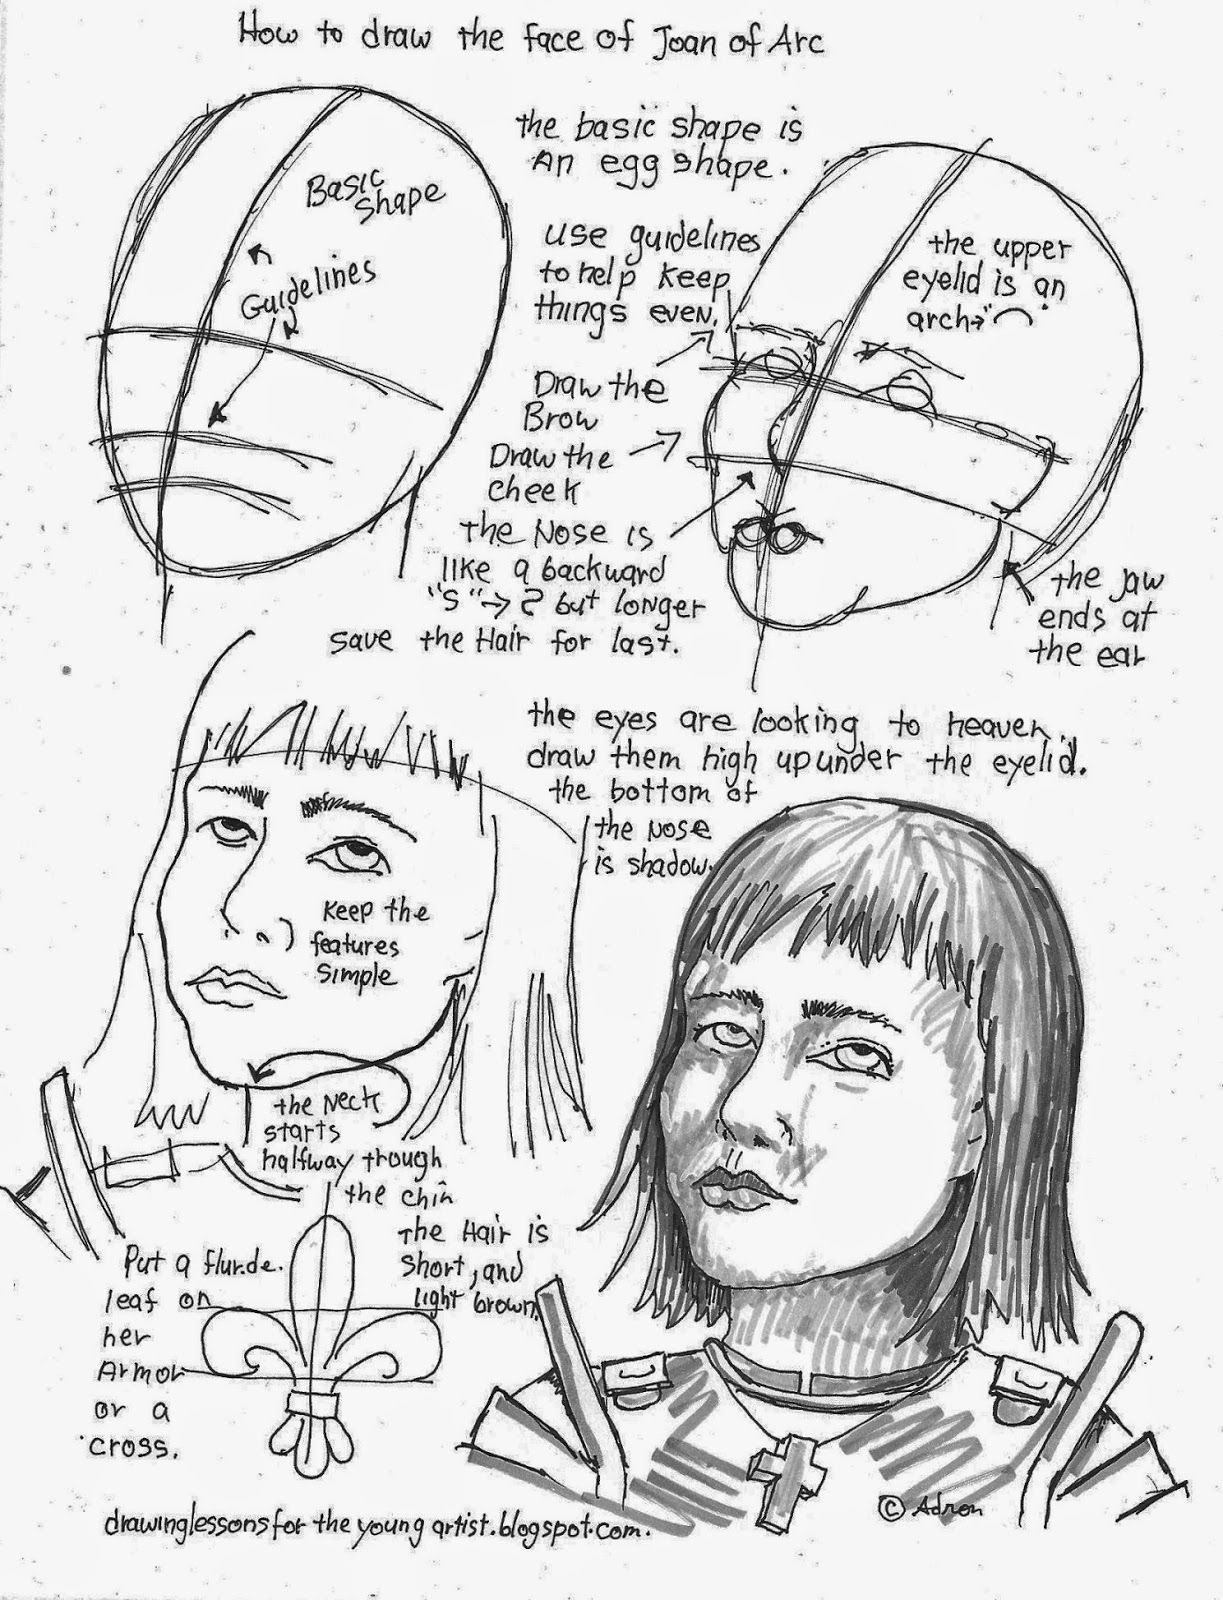 How To Draw The Face Of Joan Of Arc Jeanne D Arc